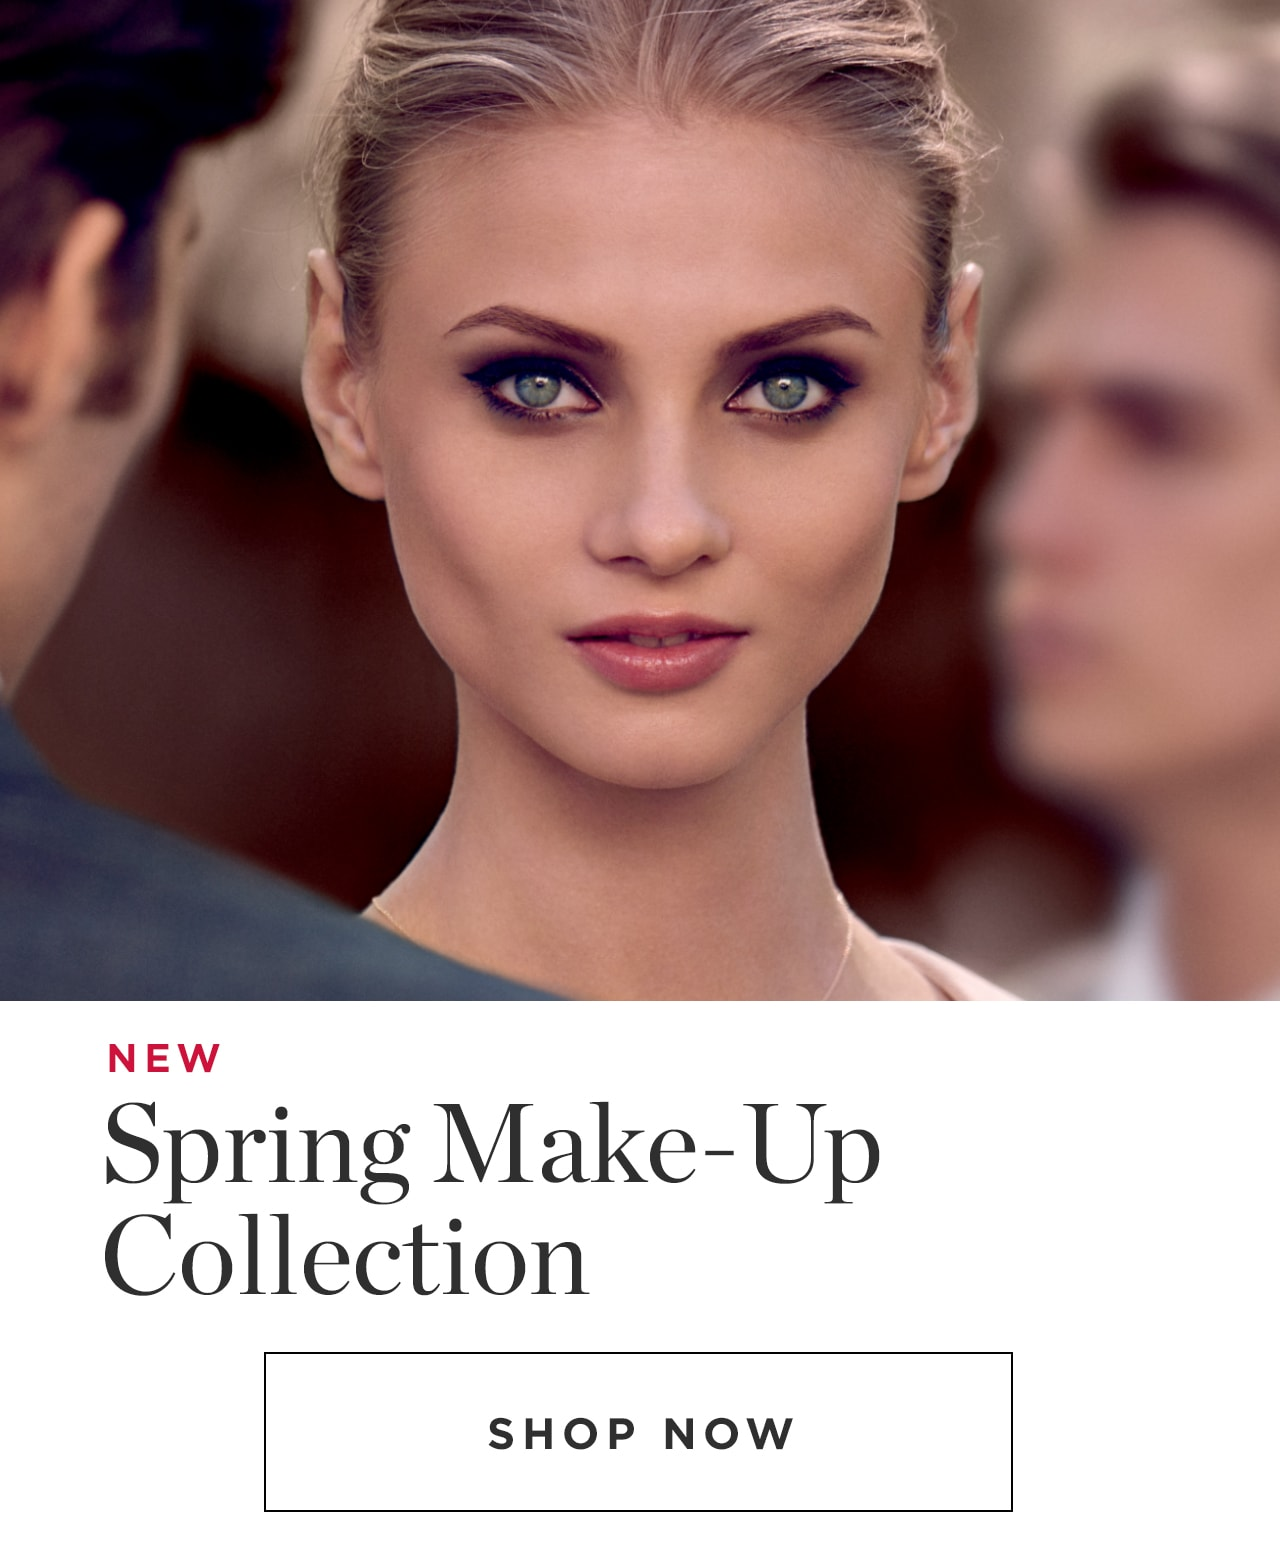 Spring 2017 Make-Up Collection Shop Now